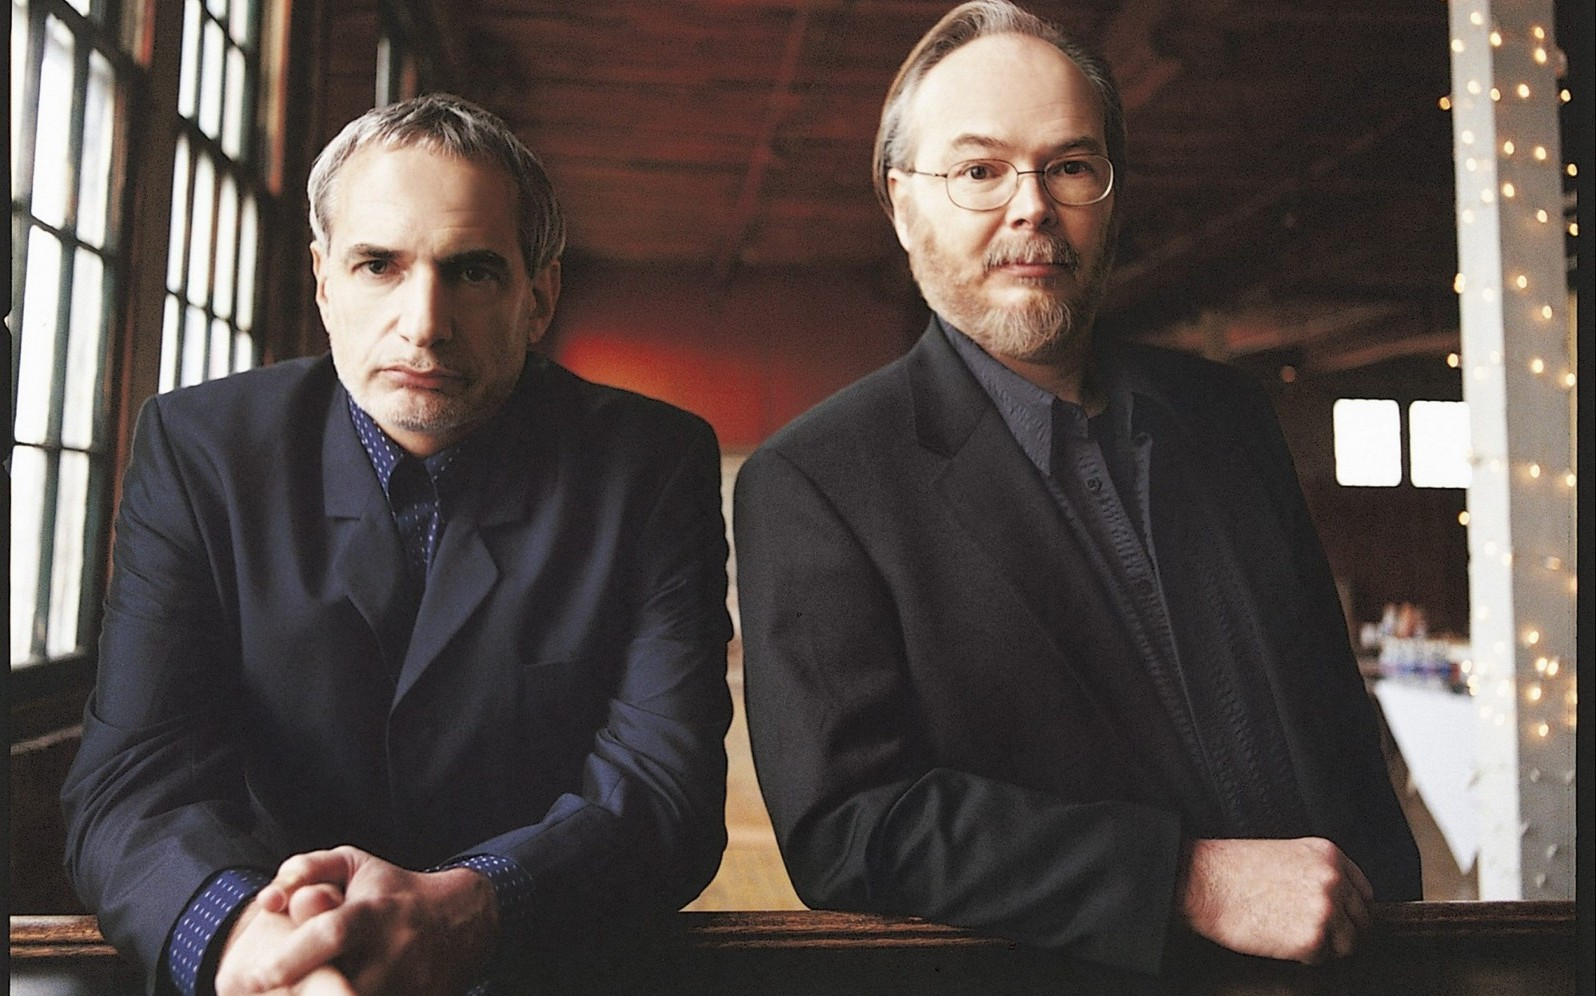 """Steely Dan - Donald Fagen, left, Walter Becker - brought their """"The Dan Who Knew Too Much"""" tour to the Seneca Niagara Casino Events Center on April 29."""